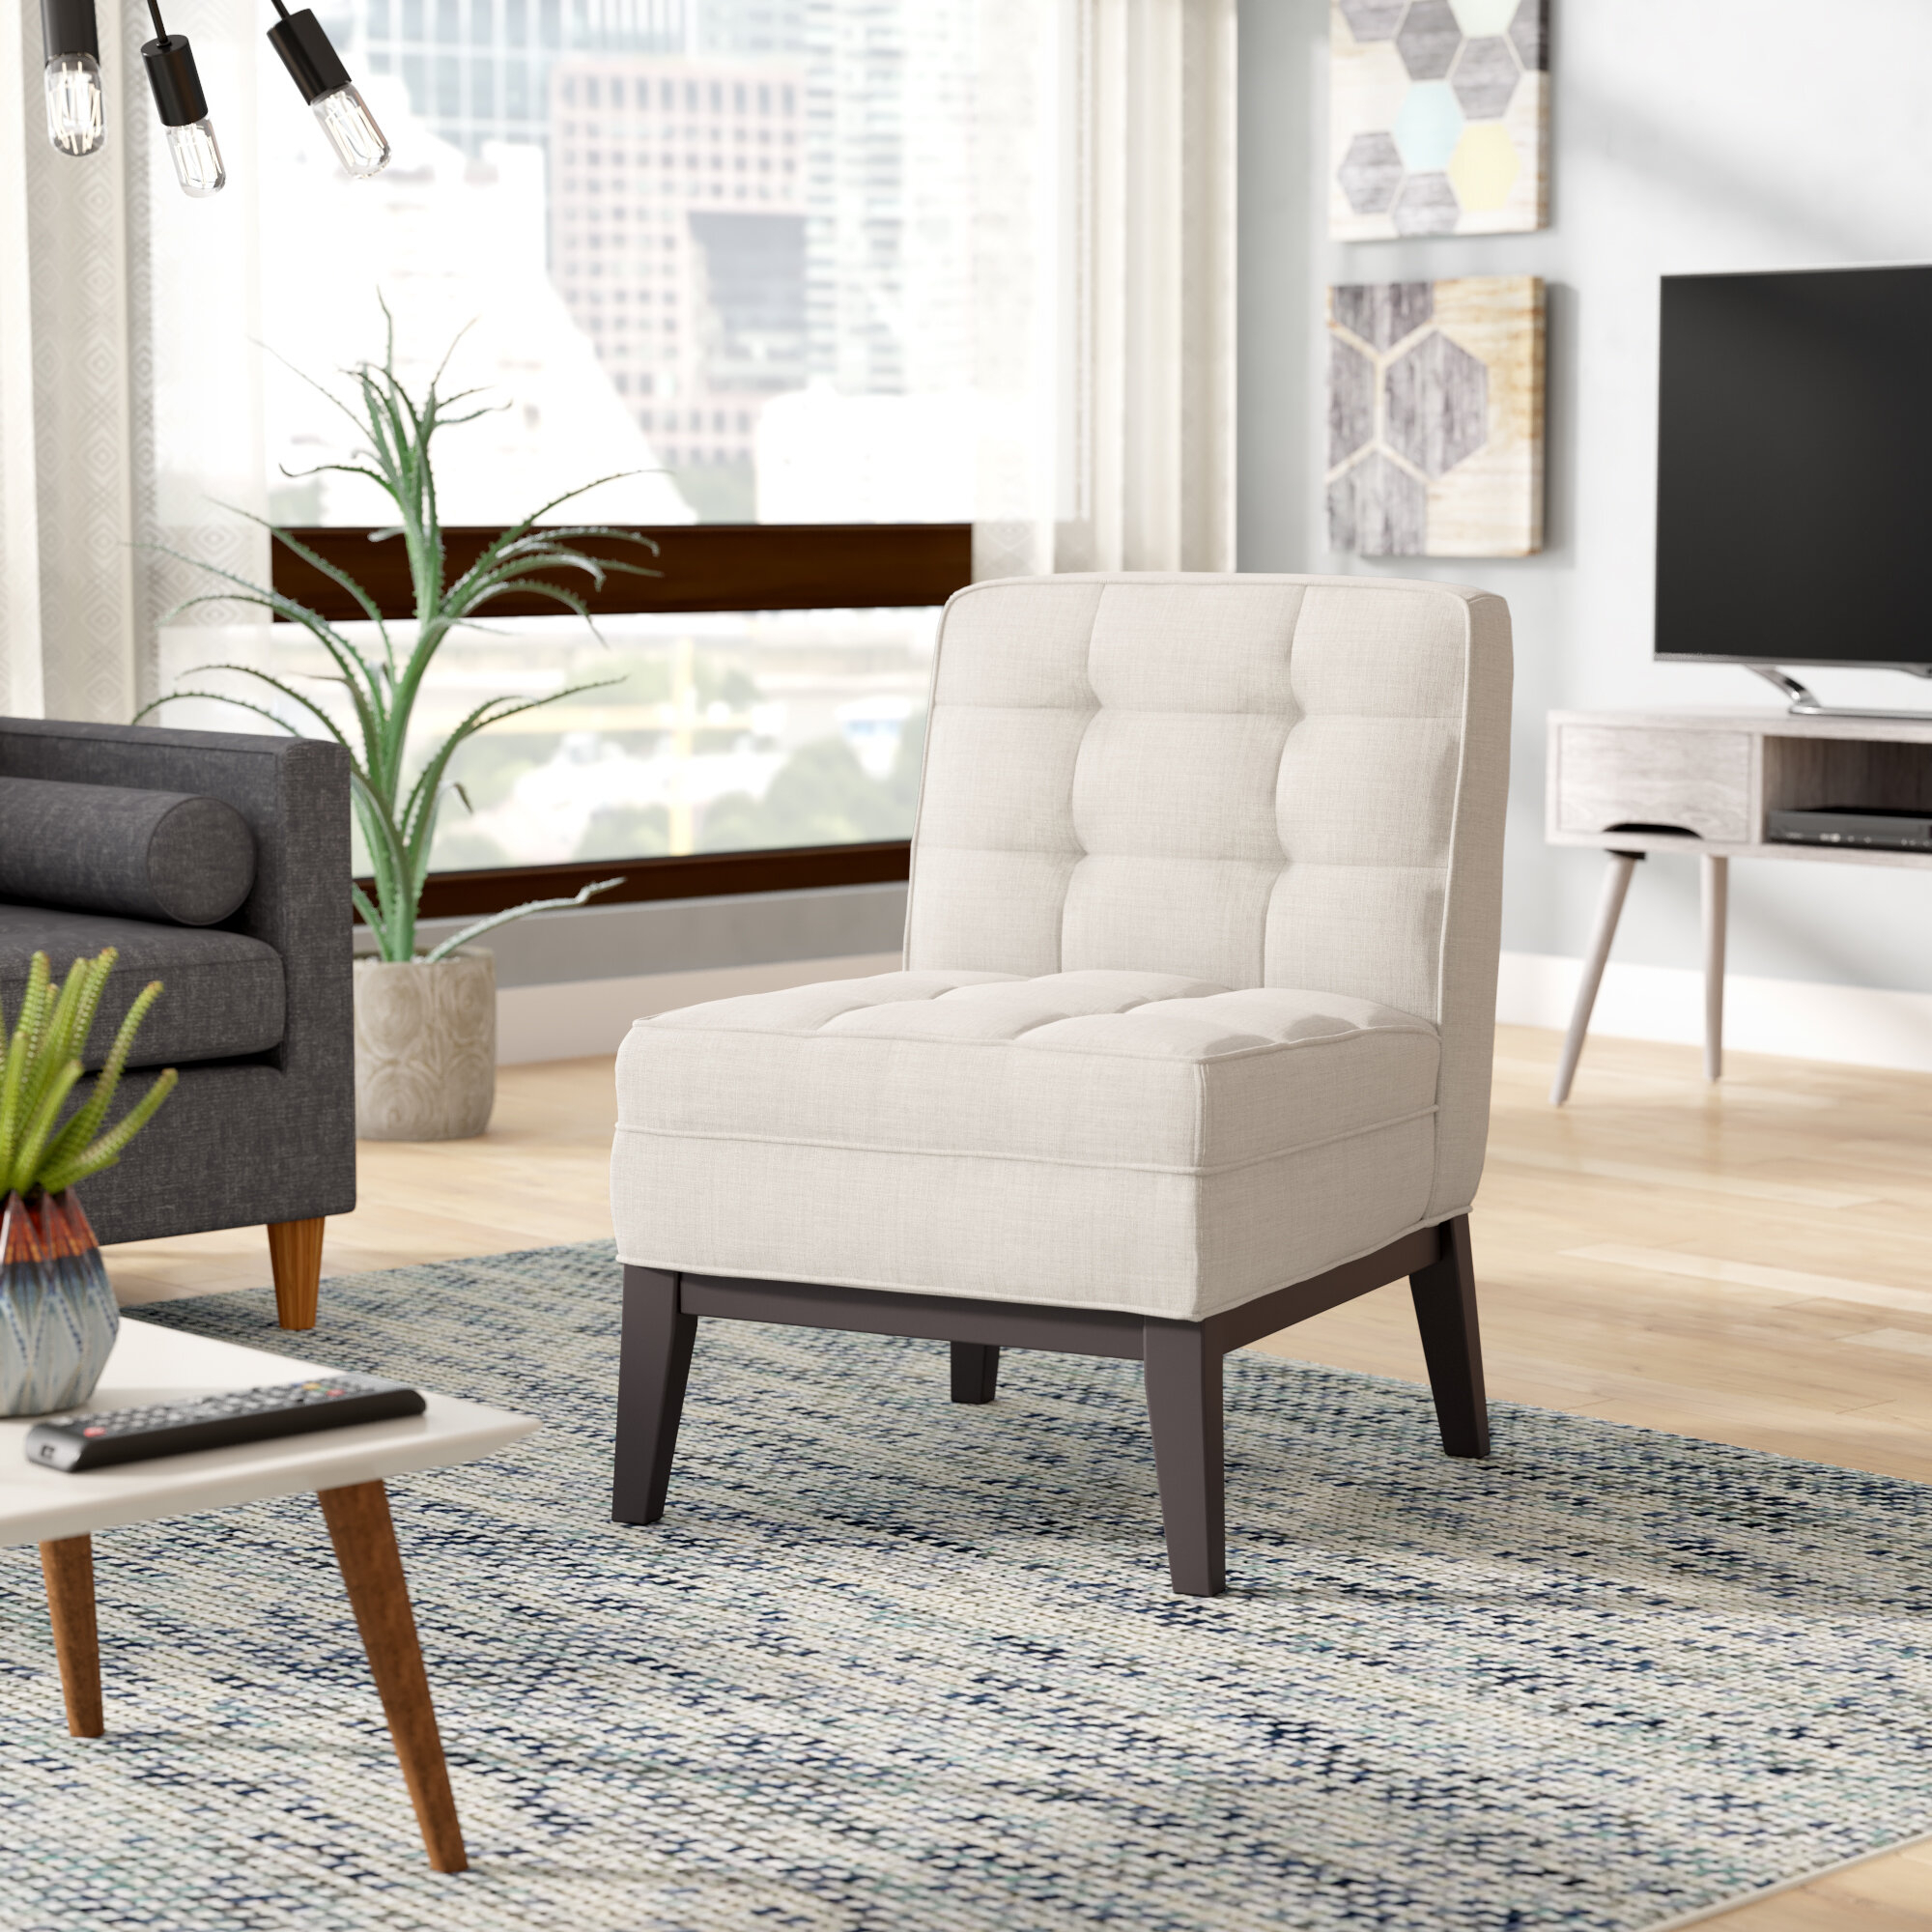 Linen Slipper Accent Chairs You'Ll Love In 2021 | Wayfair Pertaining To Alush Accent Slipper Chairs (Set Of 2) (View 14 of 15)